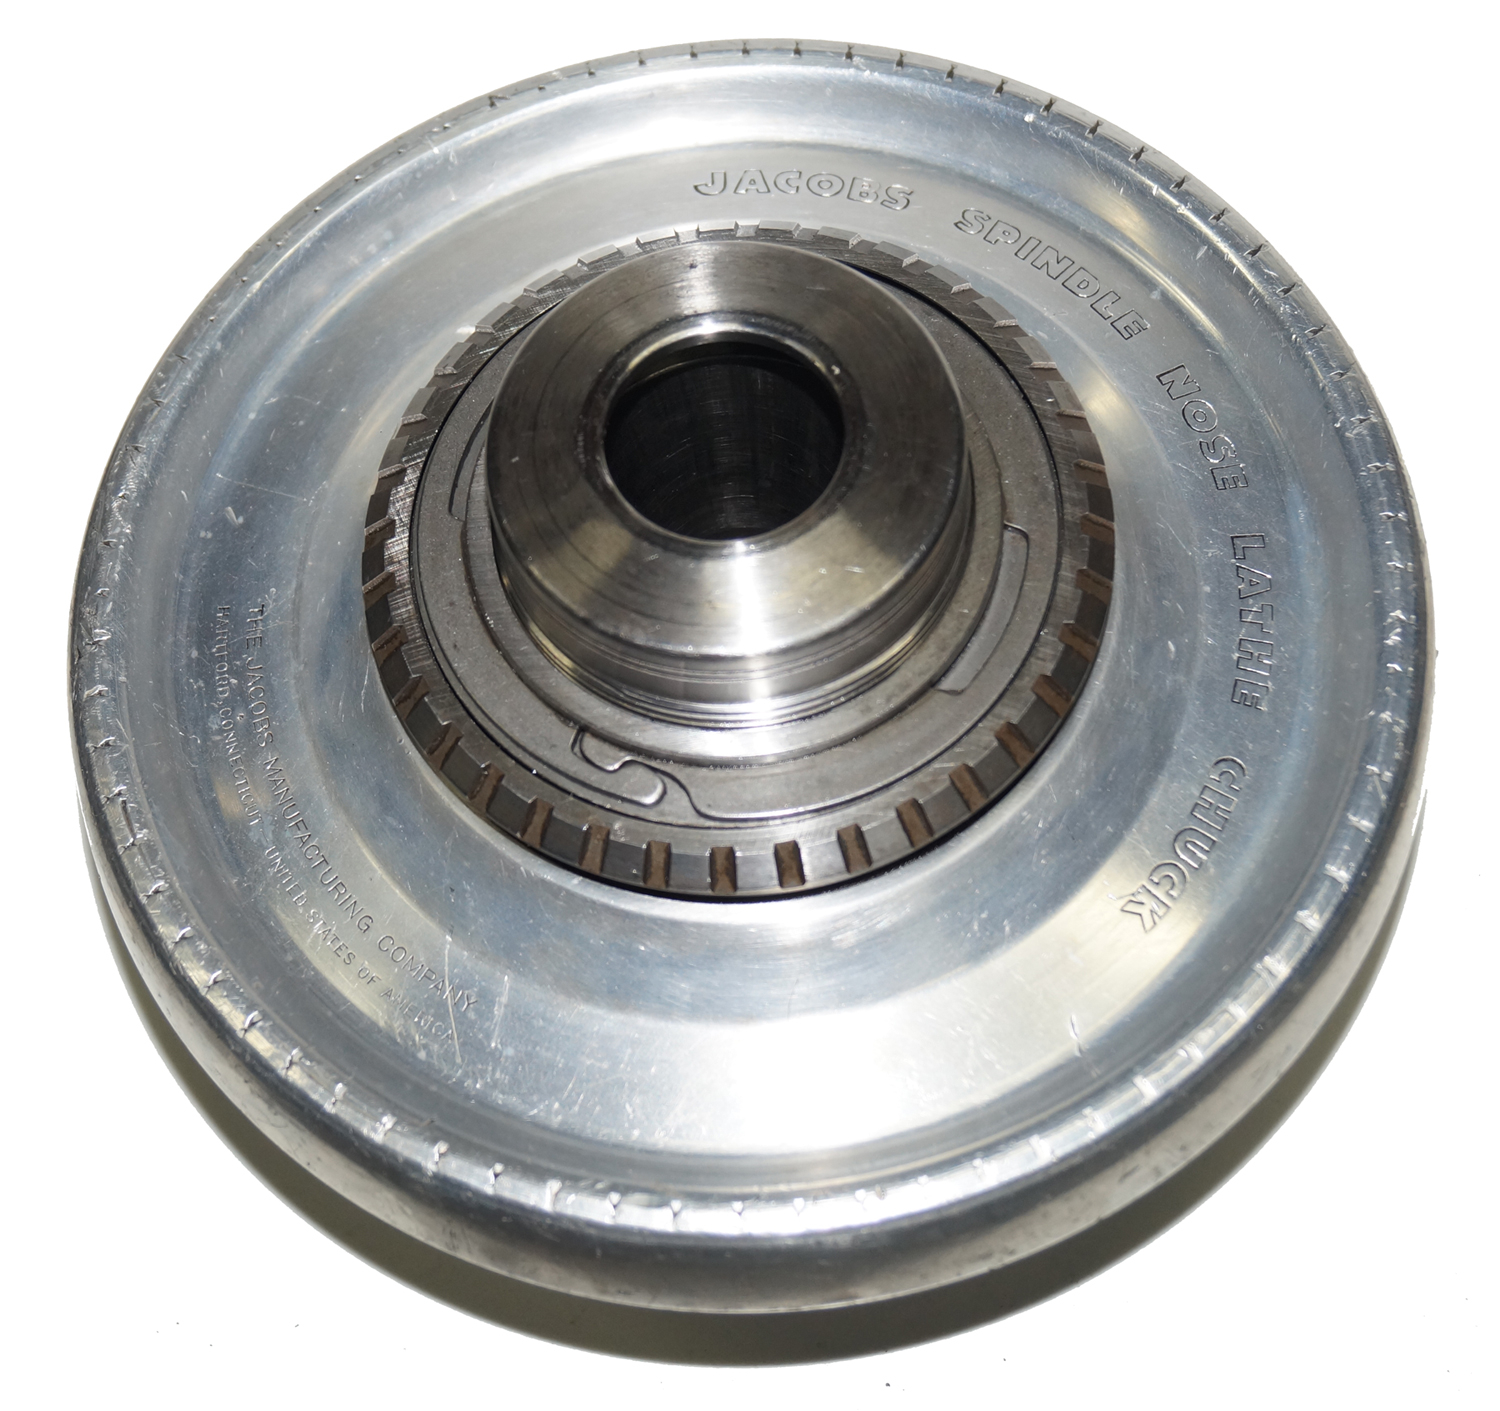 Jacobs 91-T0 L0 Spindle Nose Lathe Chuck